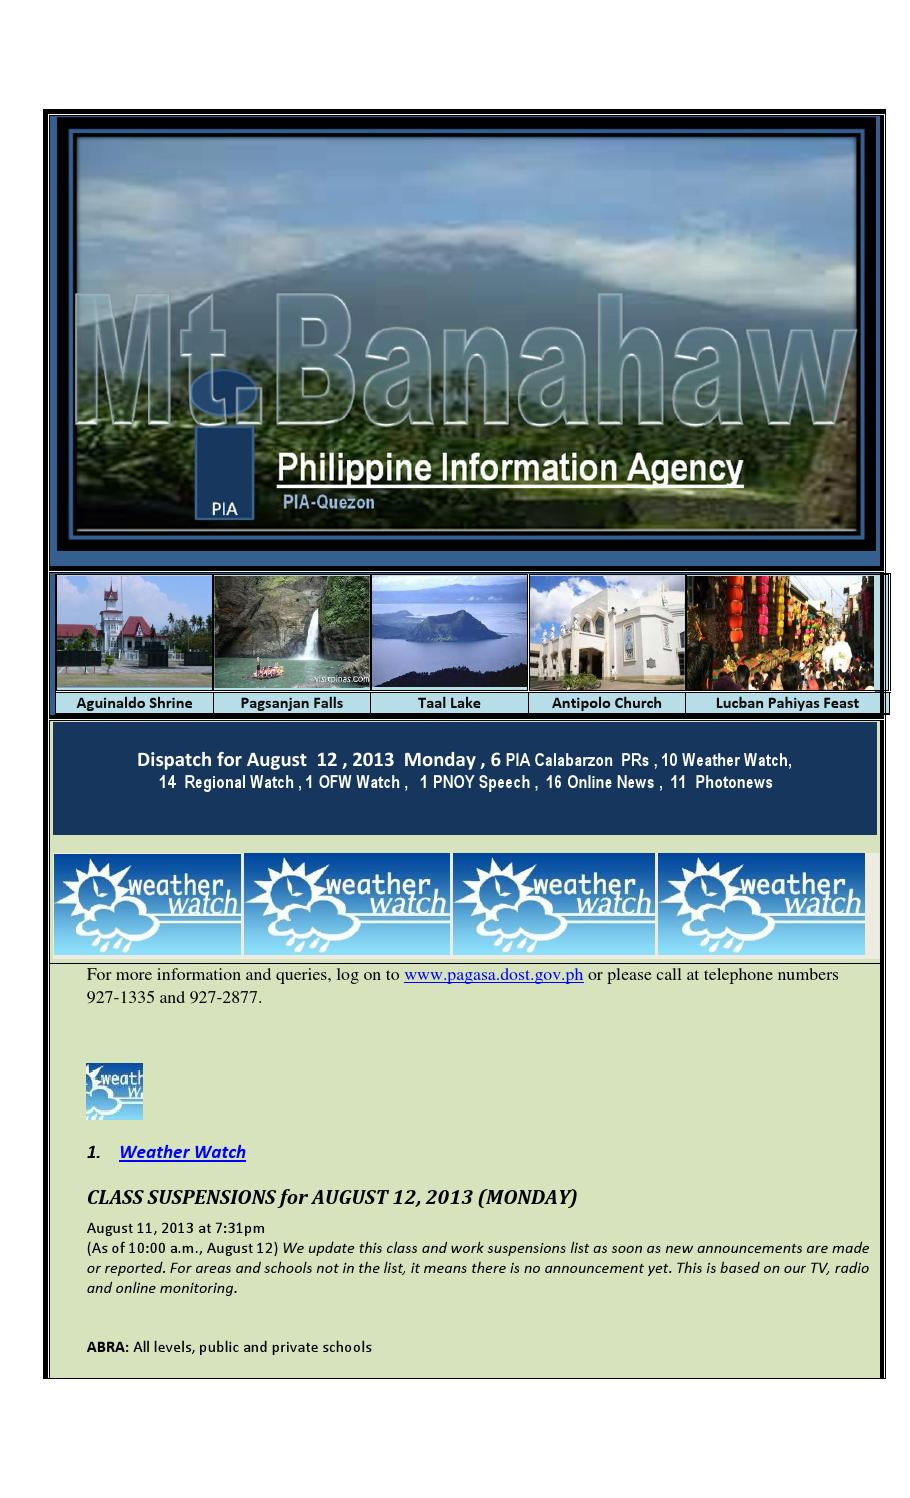 Dispatch for august 12 , 2013 monday , 6 pia calabarzon prs